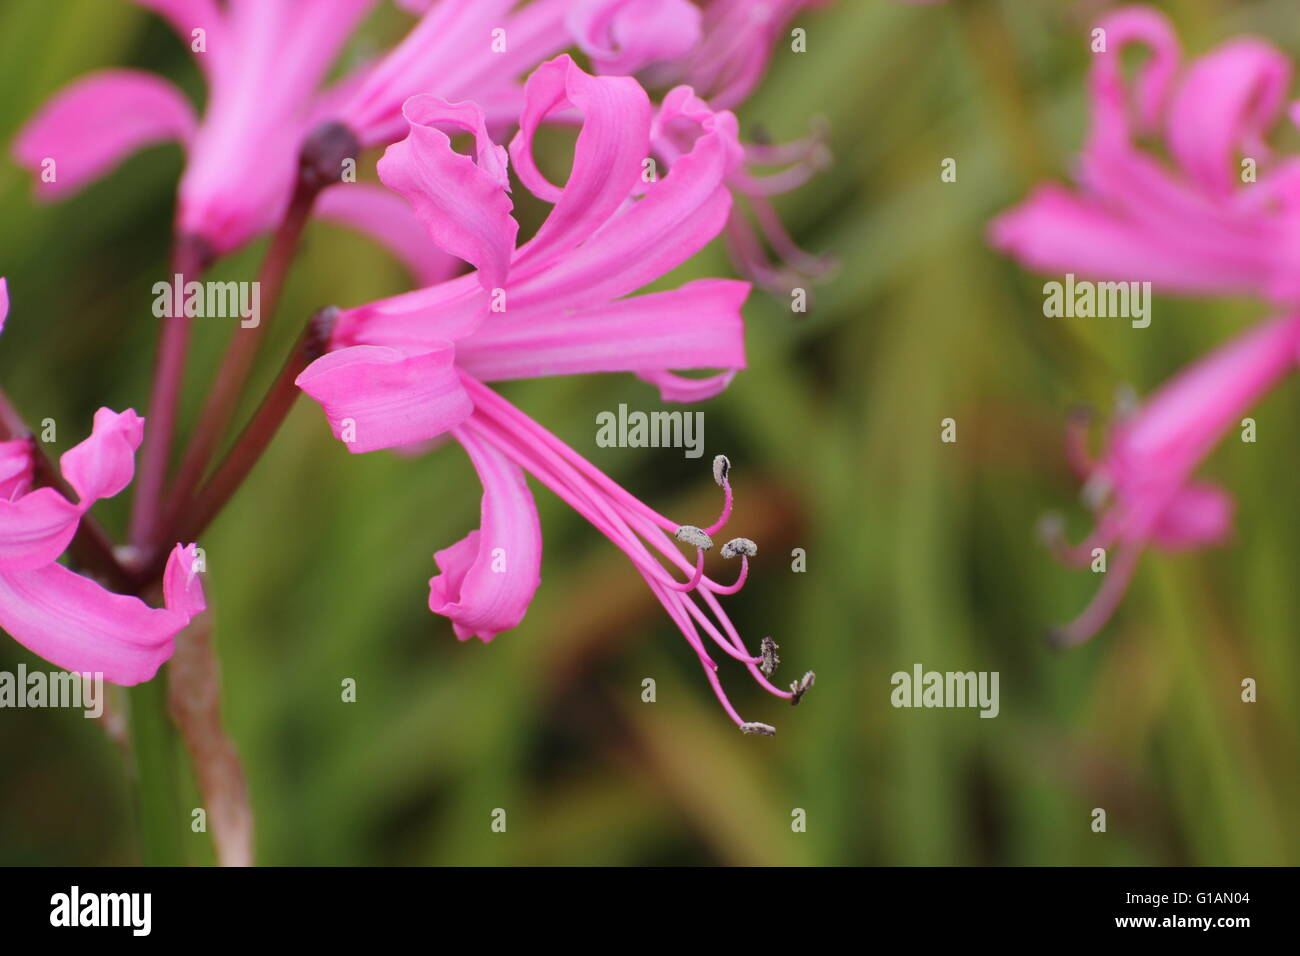 Pink blossoms of the Guernsey lily (Nerina bowdenii). - Stock Image